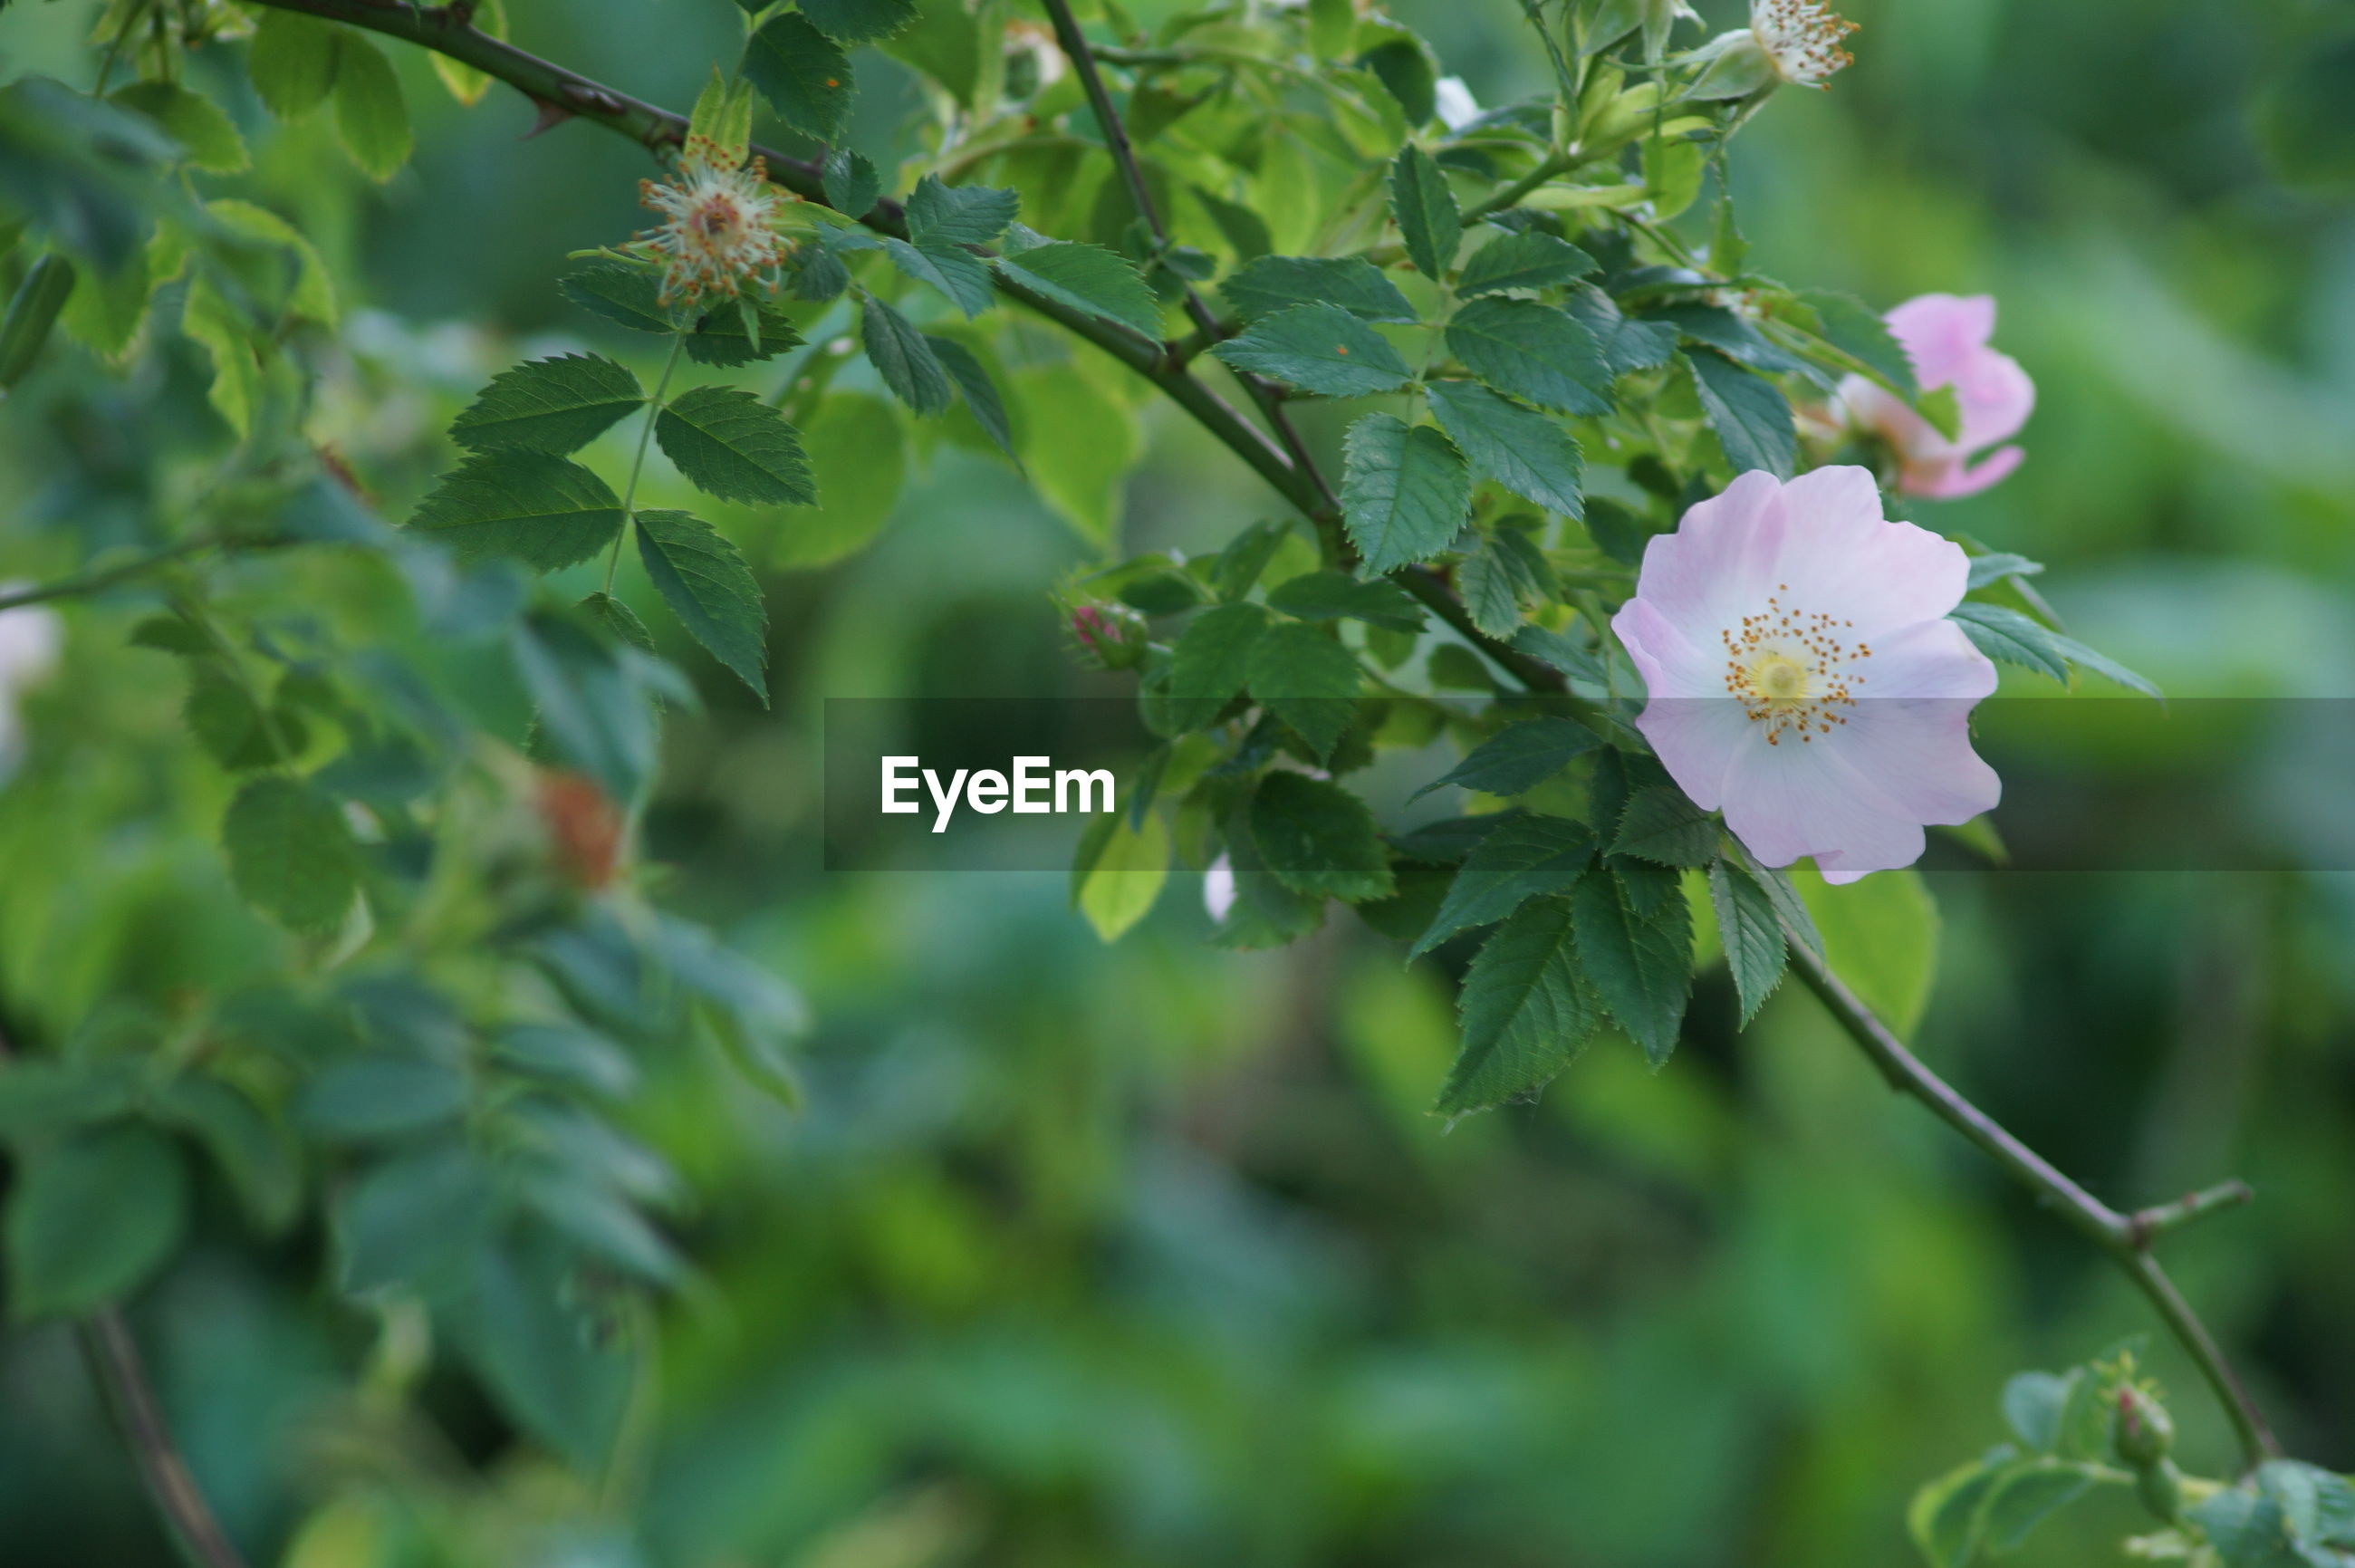 flower, growth, nature, beauty in nature, fragility, green color, petal, leaf, freshness, day, outdoors, no people, plant, focus on foreground, flower head, close-up, blooming